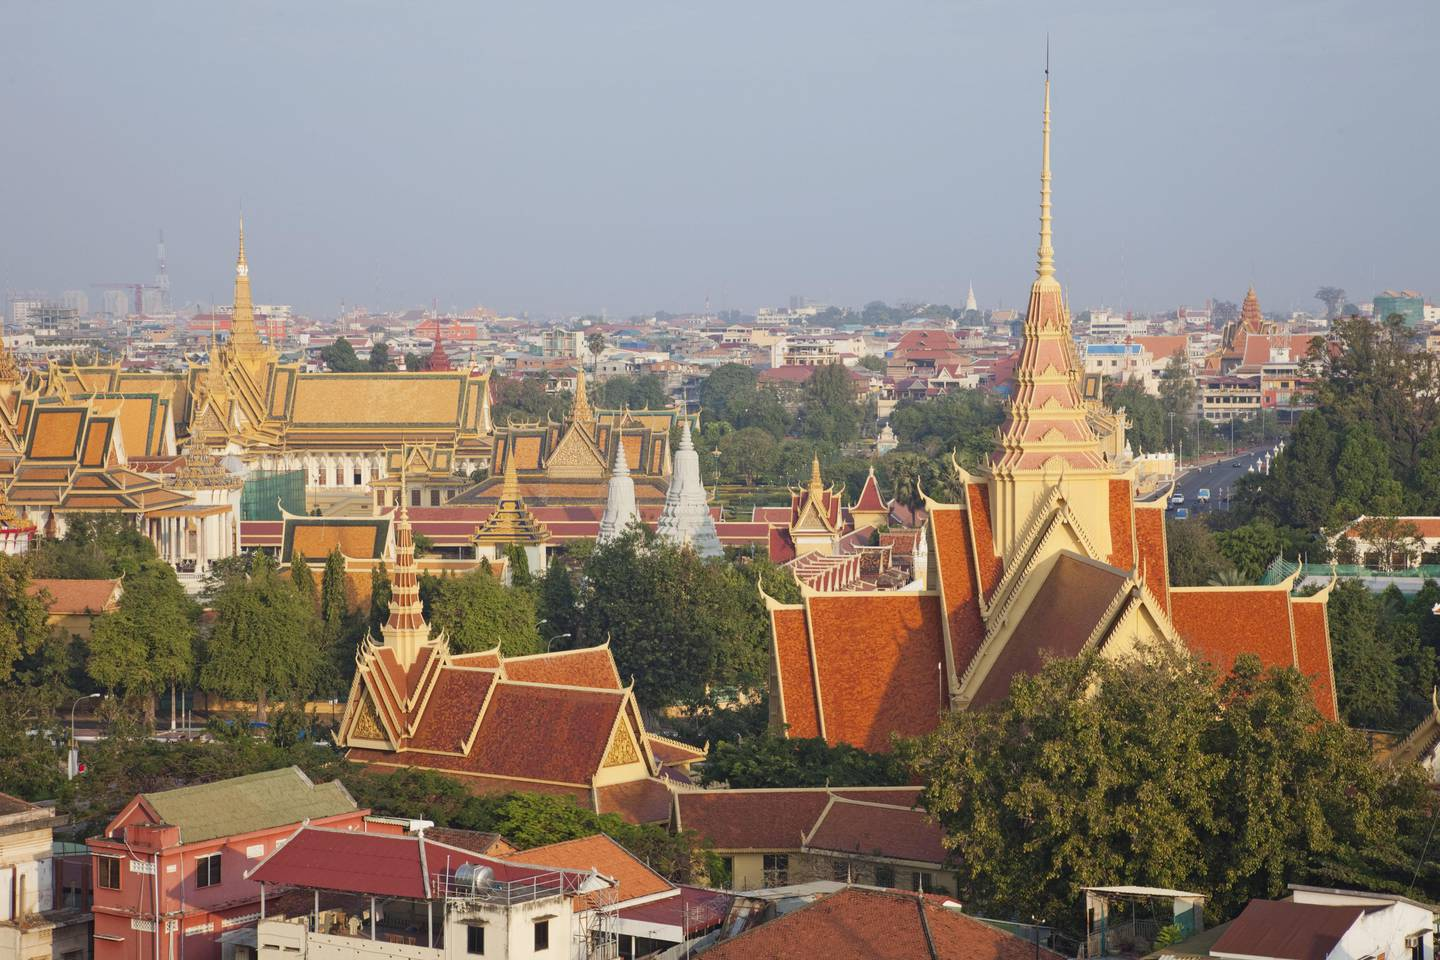 JAGXT6 Cambodia,Phnom Penh,town overview. mauritius images GmbH / Alamy Stock Photo